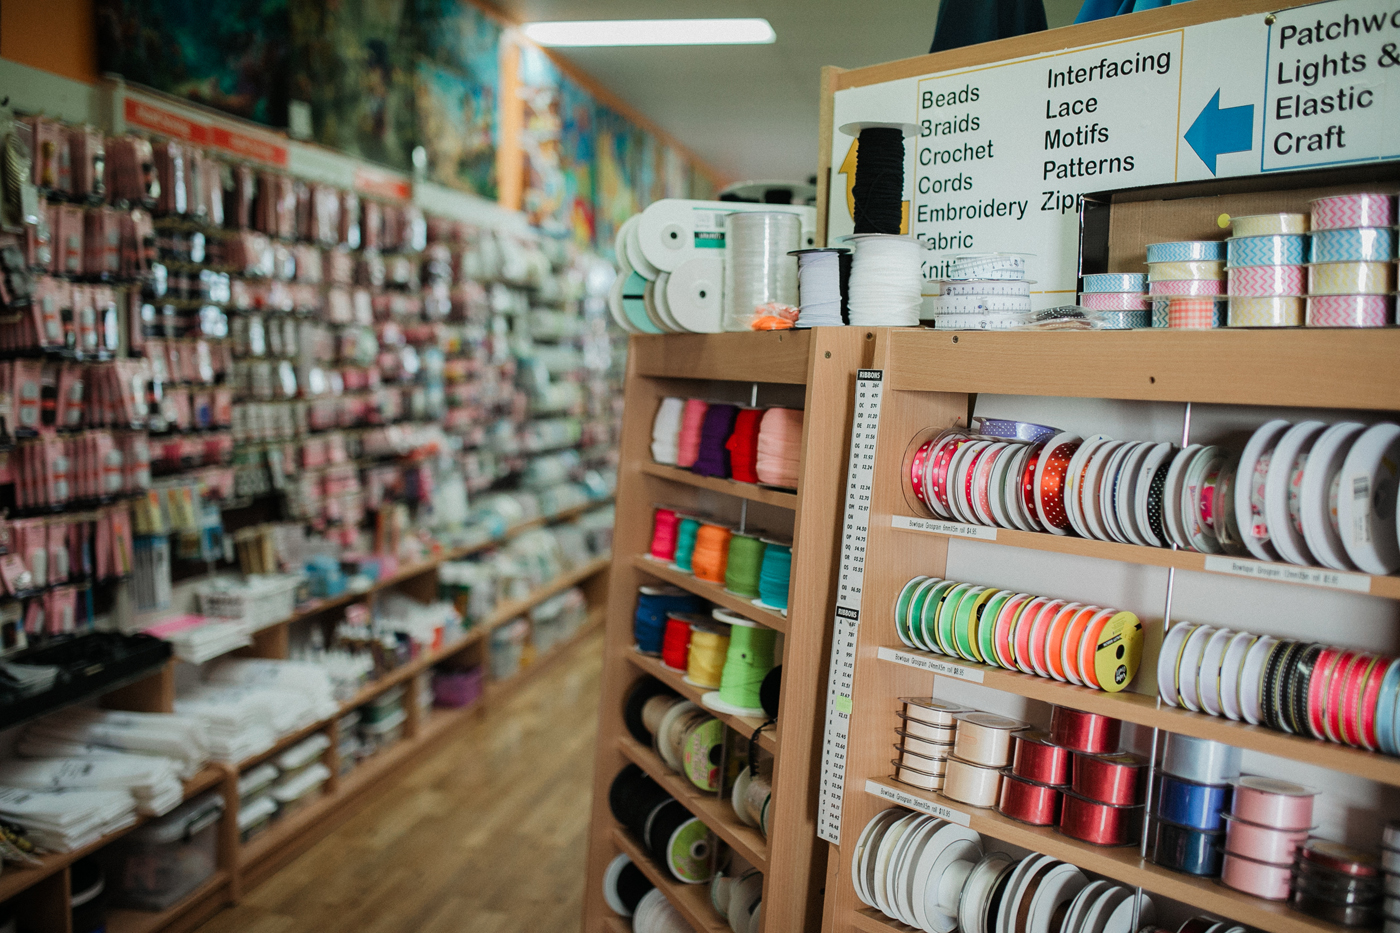 Needleworx store with rows of fabric and sewing material and ribbon